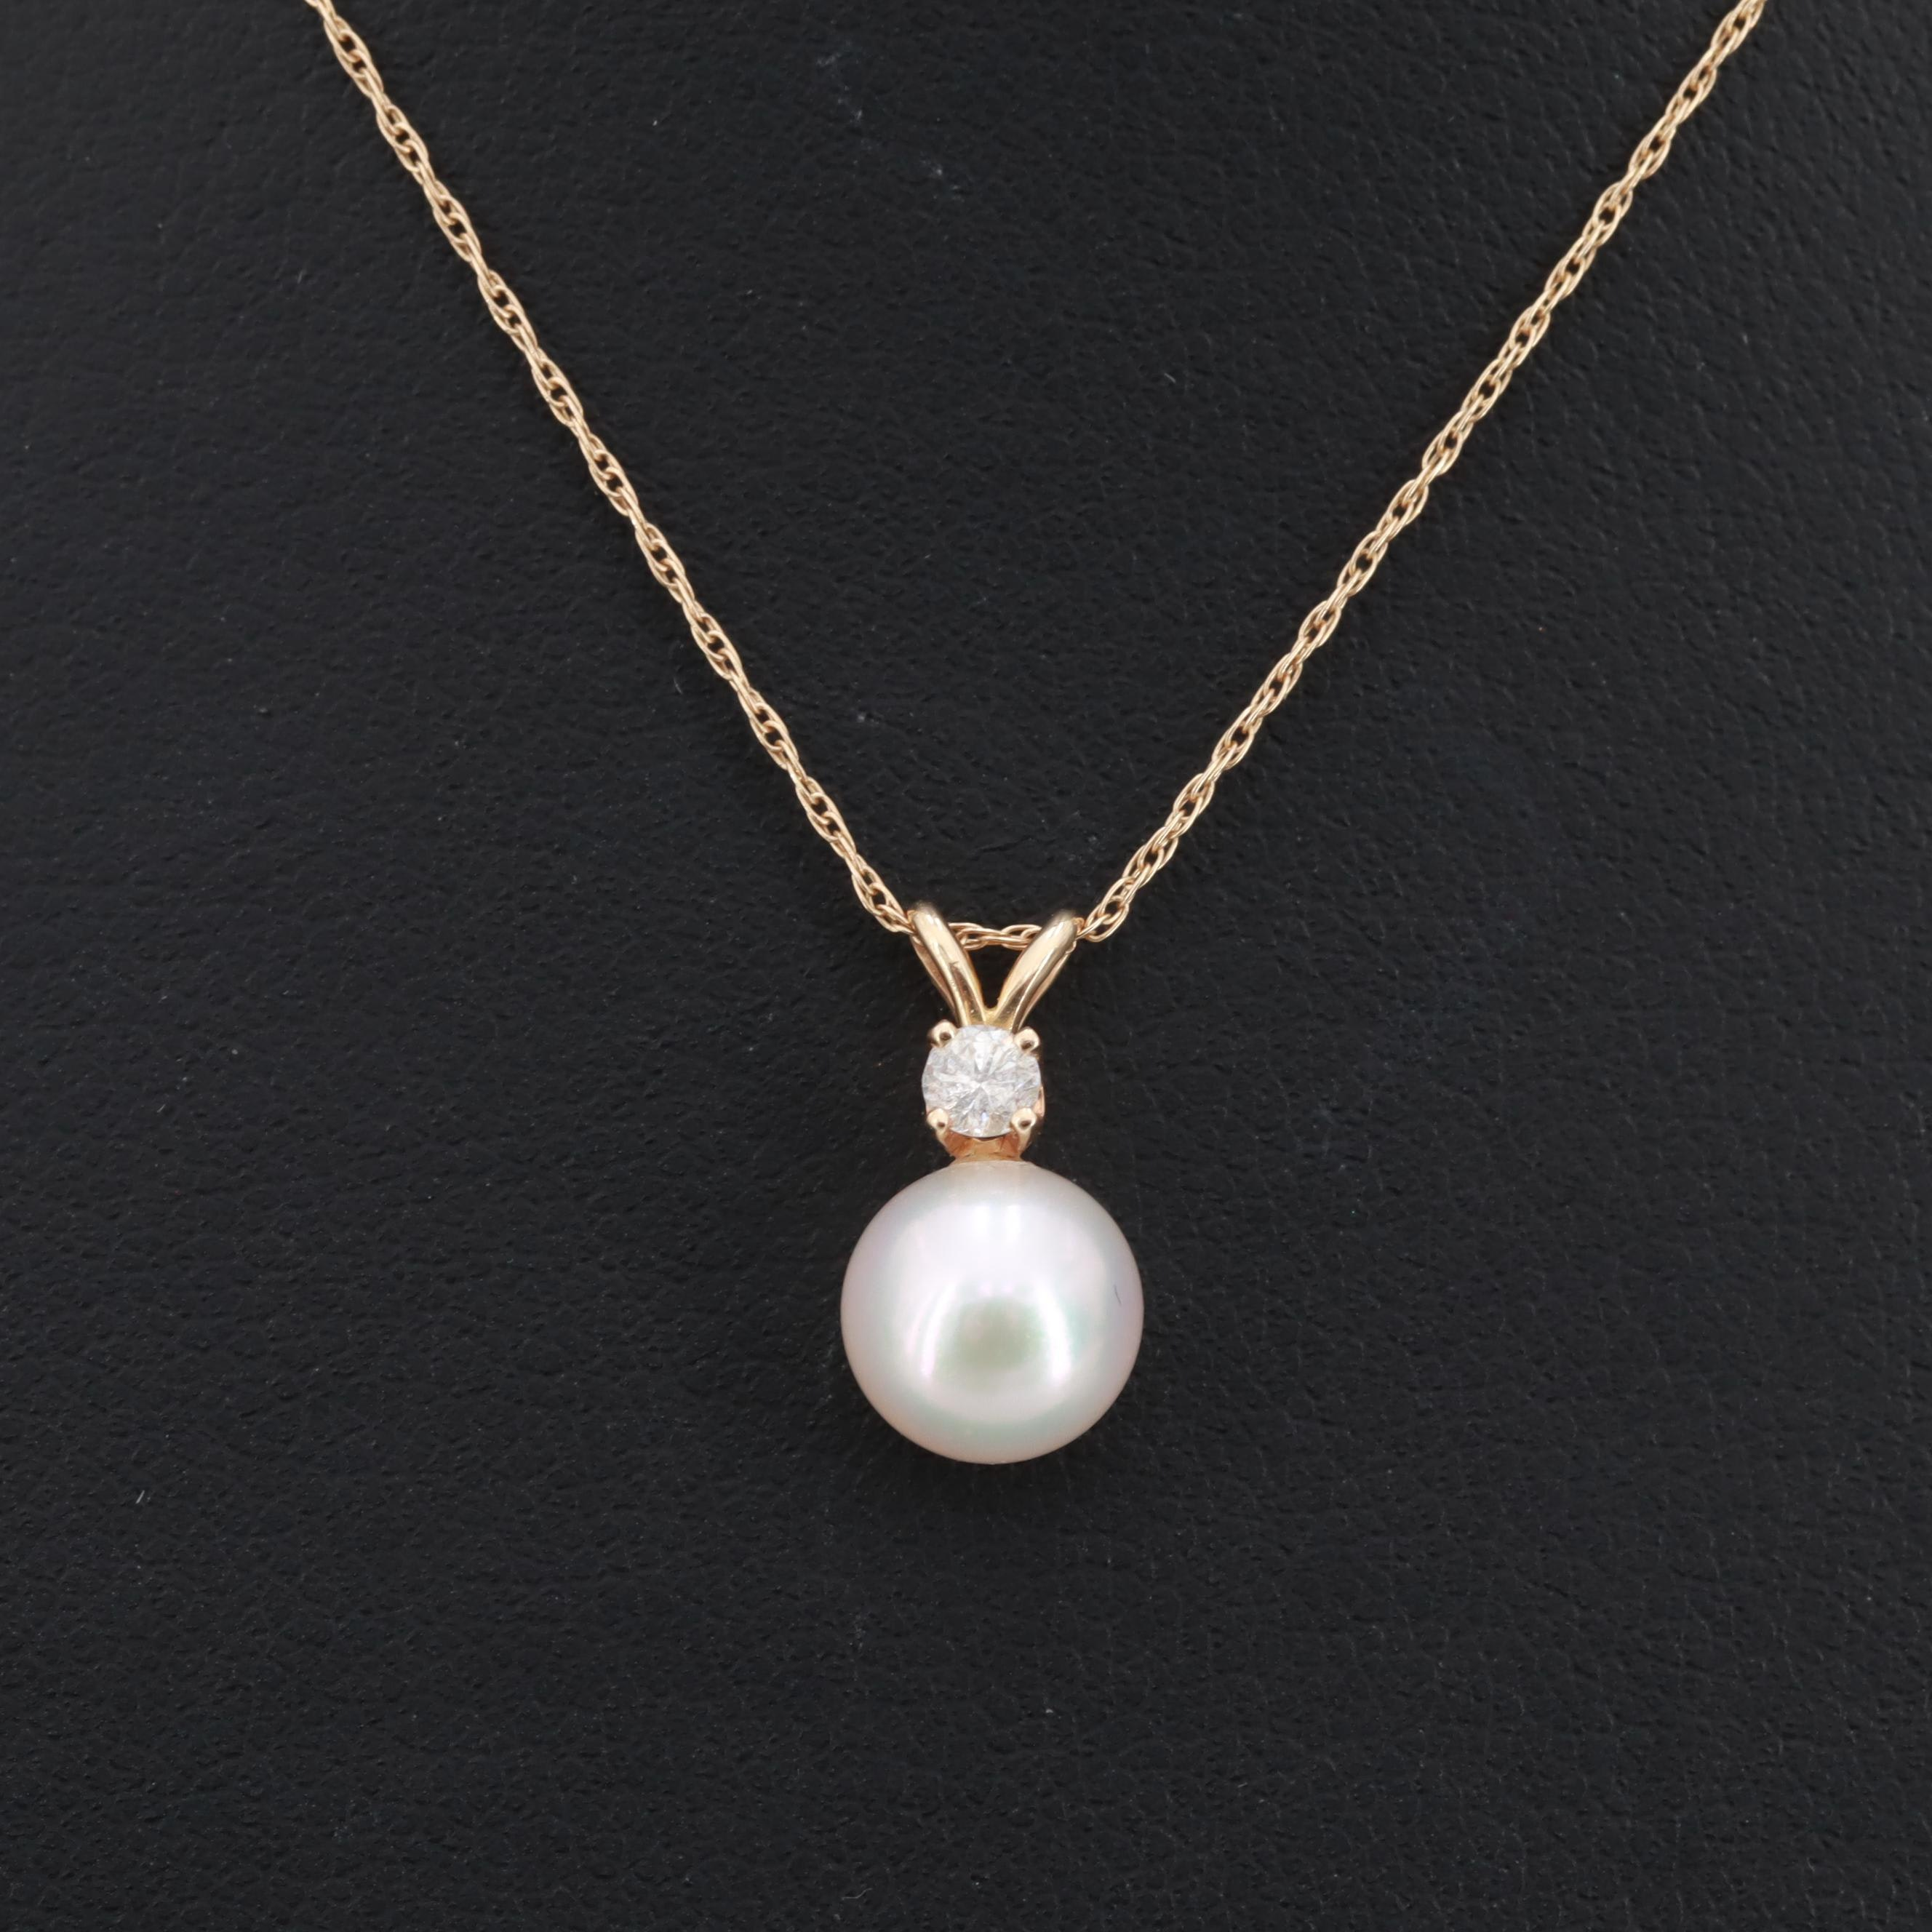 14K Yellow Gold Cultured Pearl and Diamond Pendant with Rope Chain Necklace